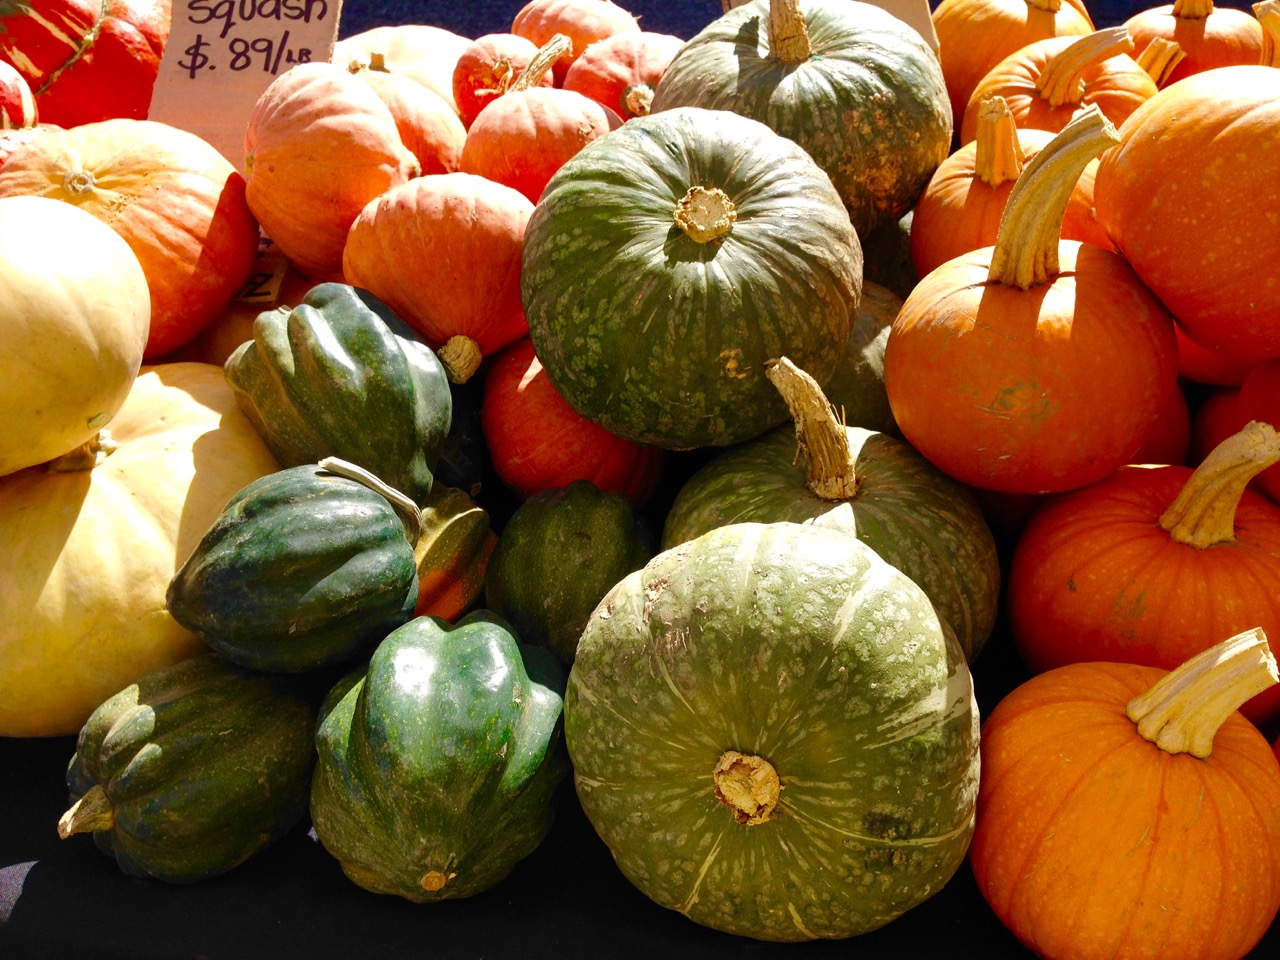 farmers market pumpkins and squash